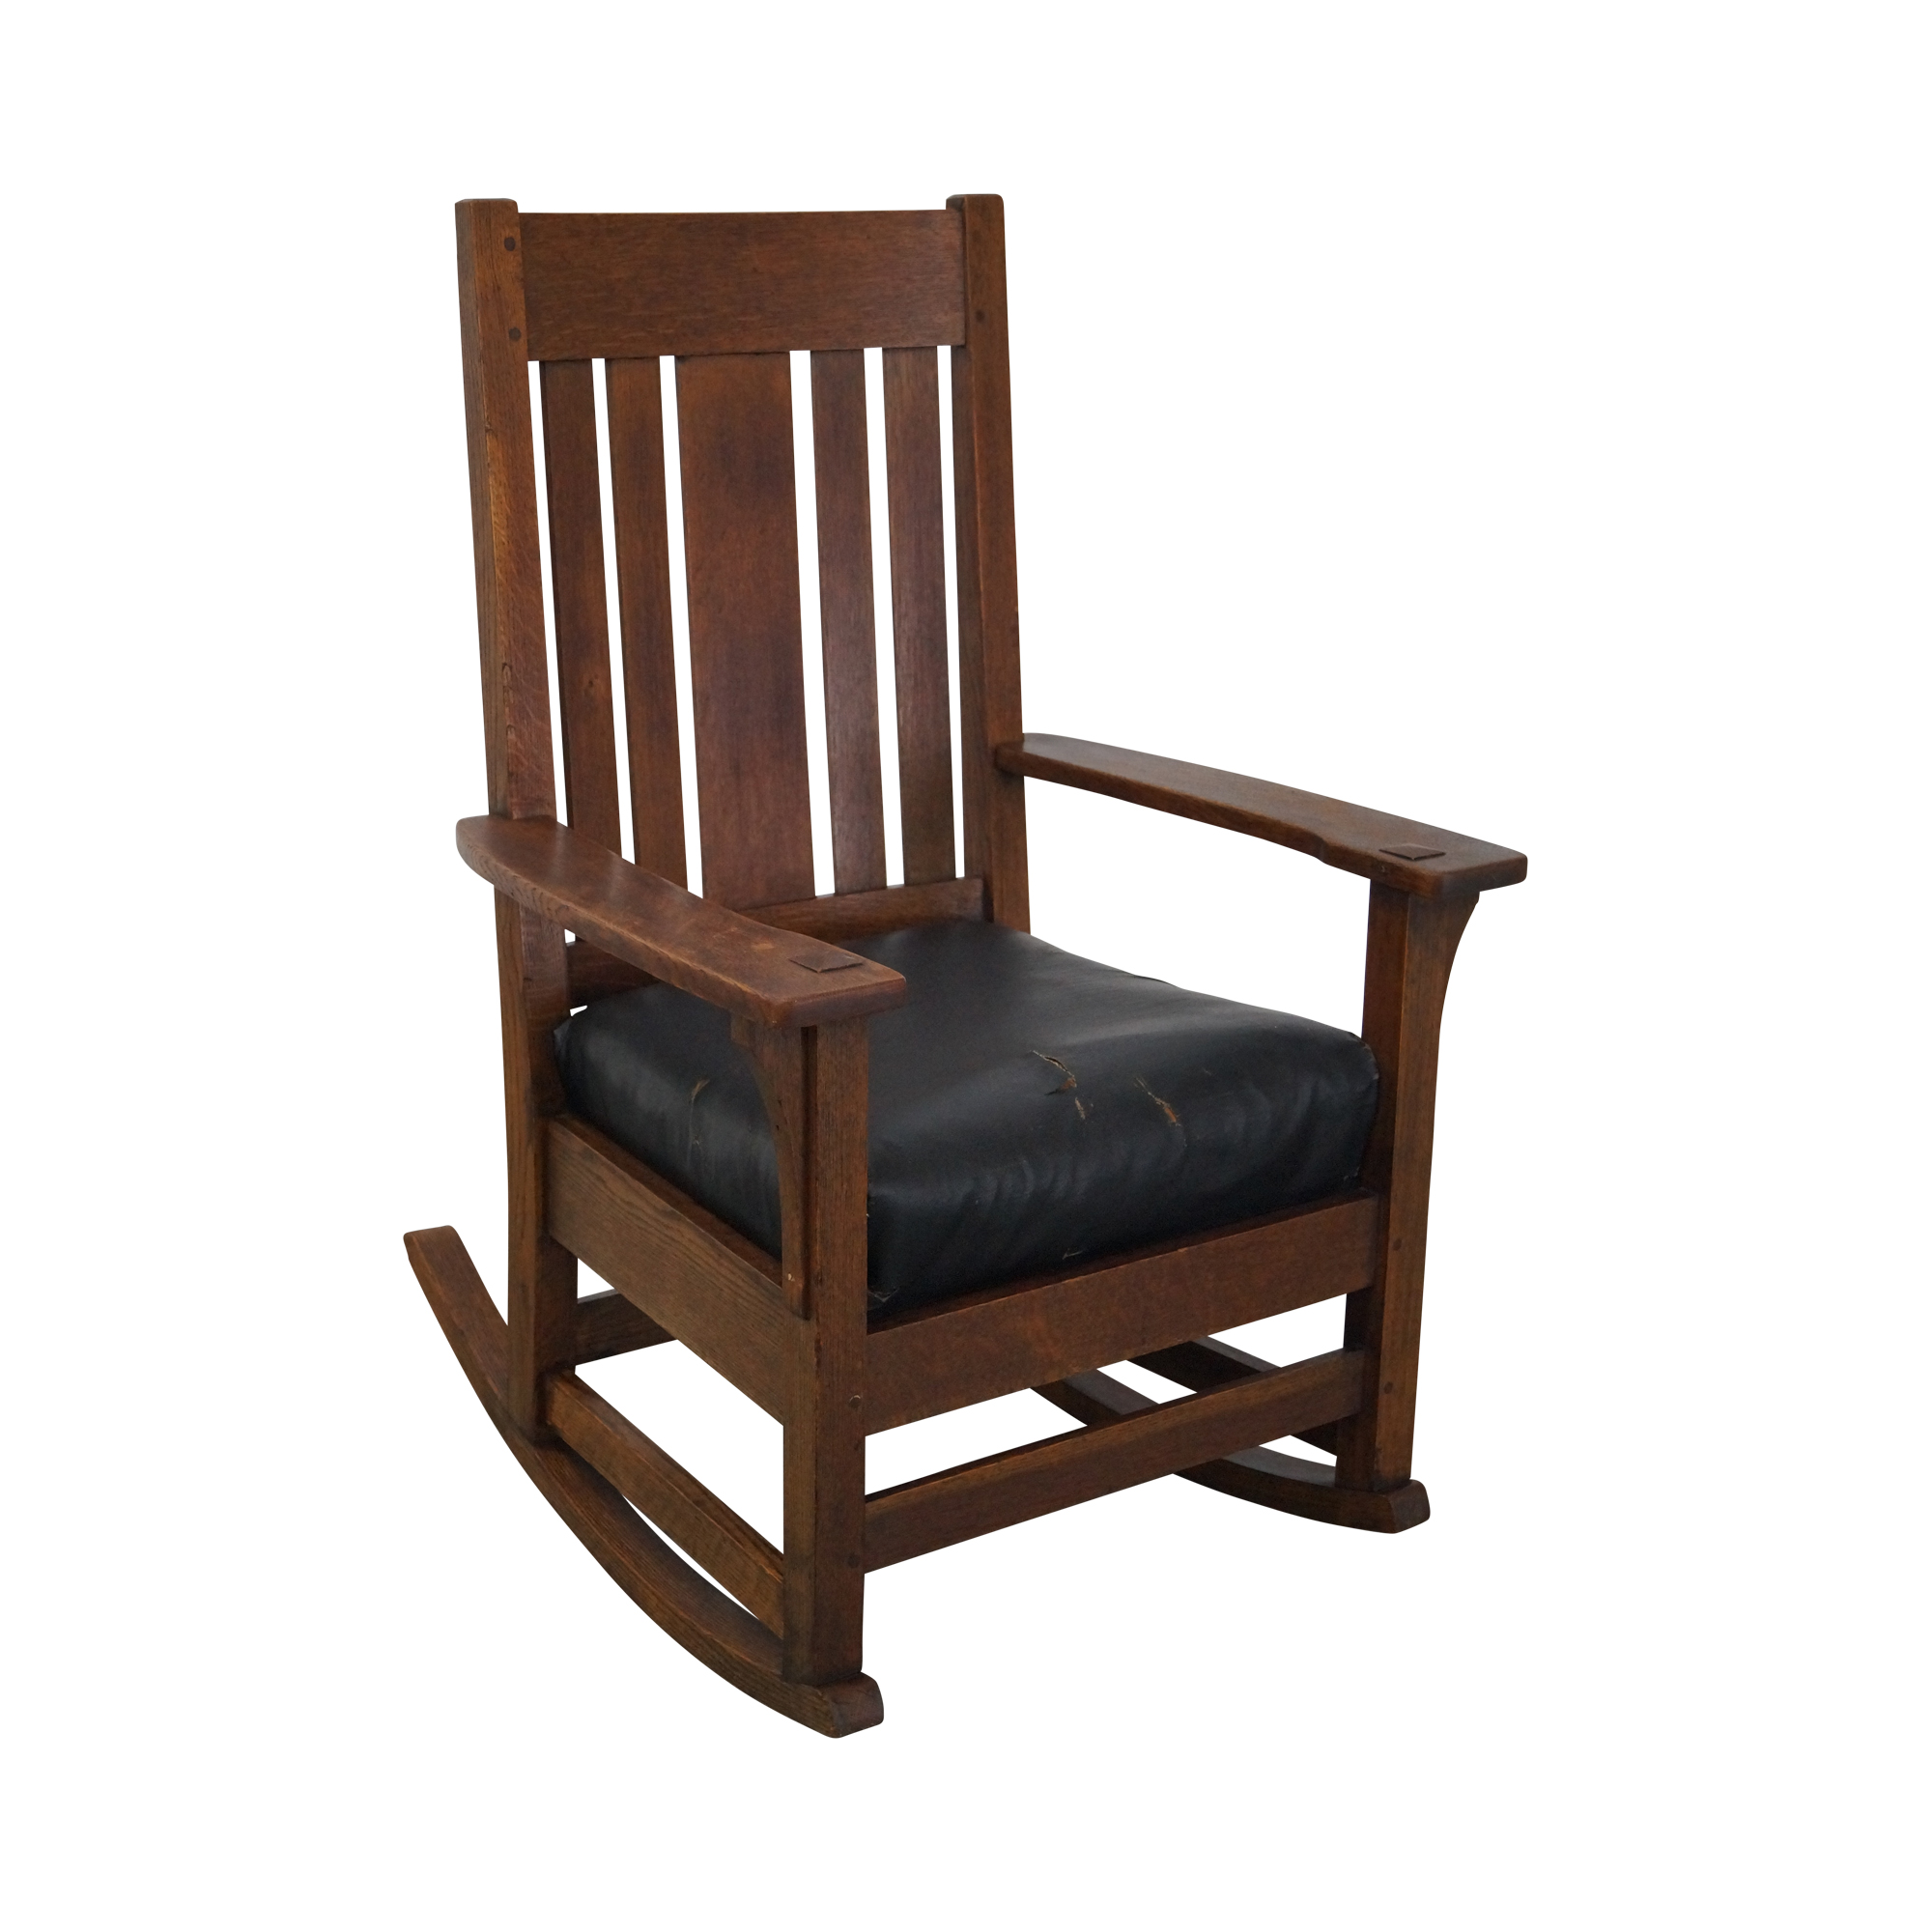 Mexican Rocking Chair Antique Mission Oak Rocking Chair In 2018 Southwestern